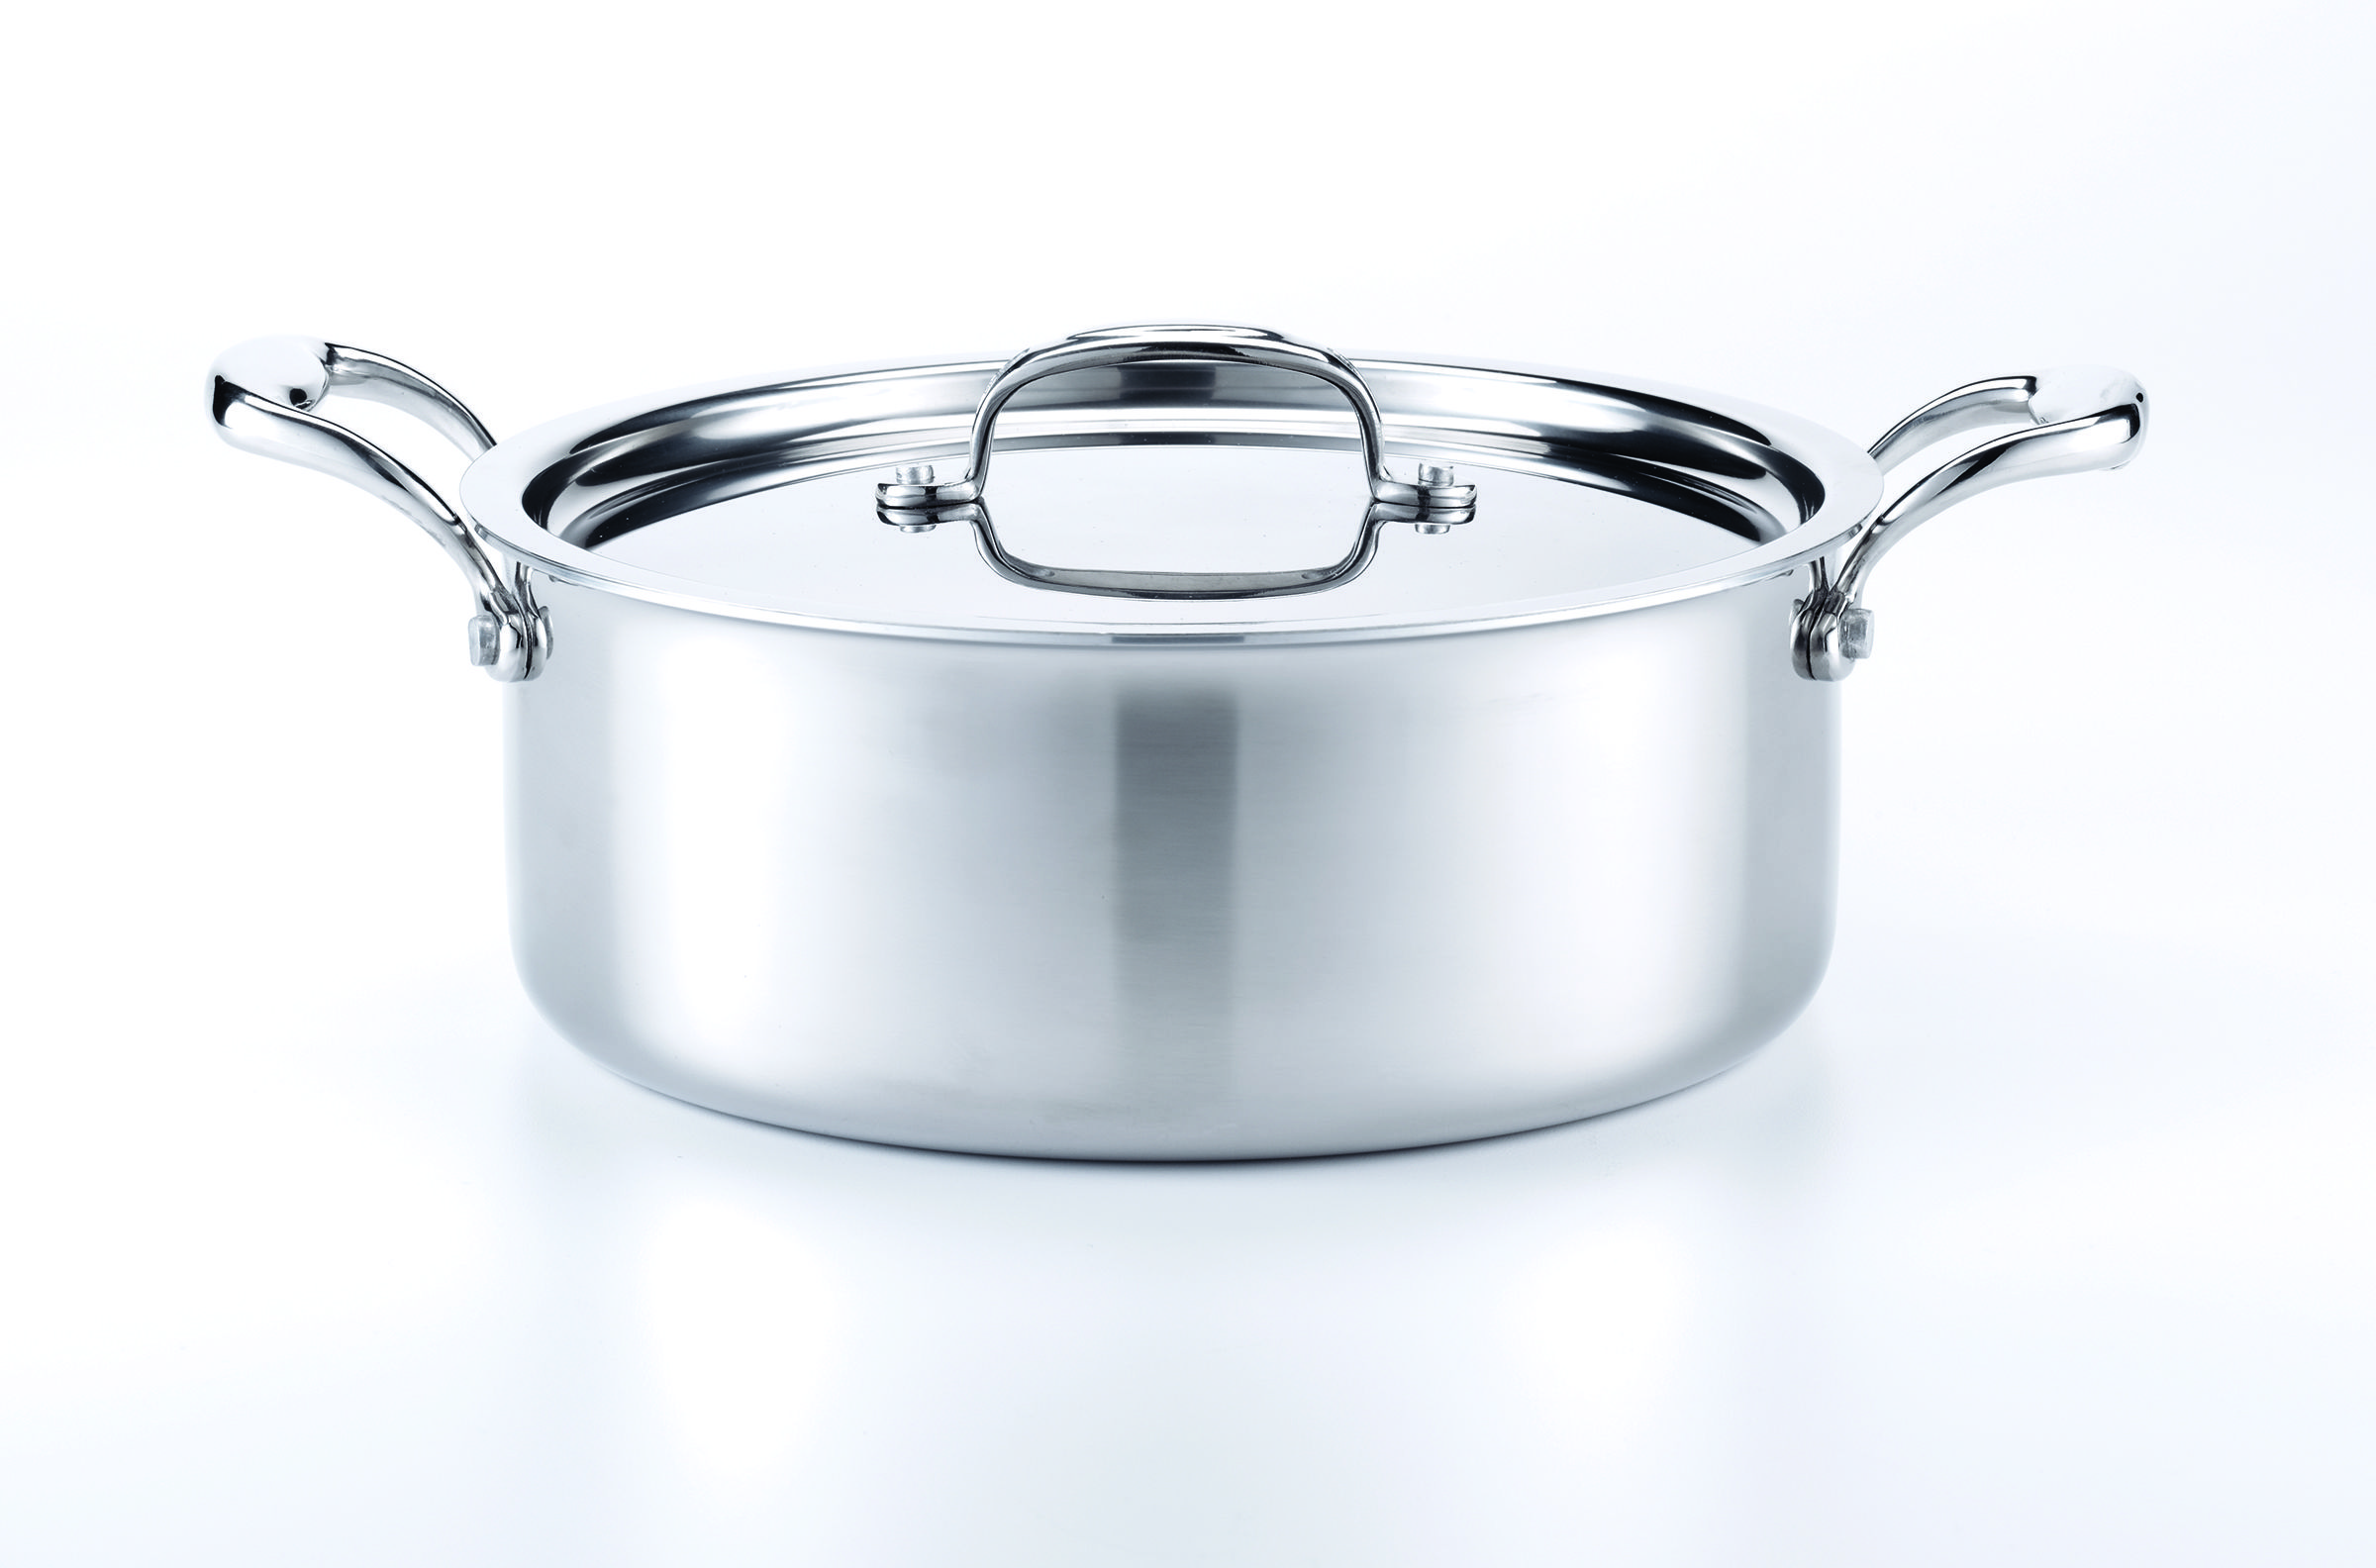 Hammer stahl cookware stainless steel made in the usa